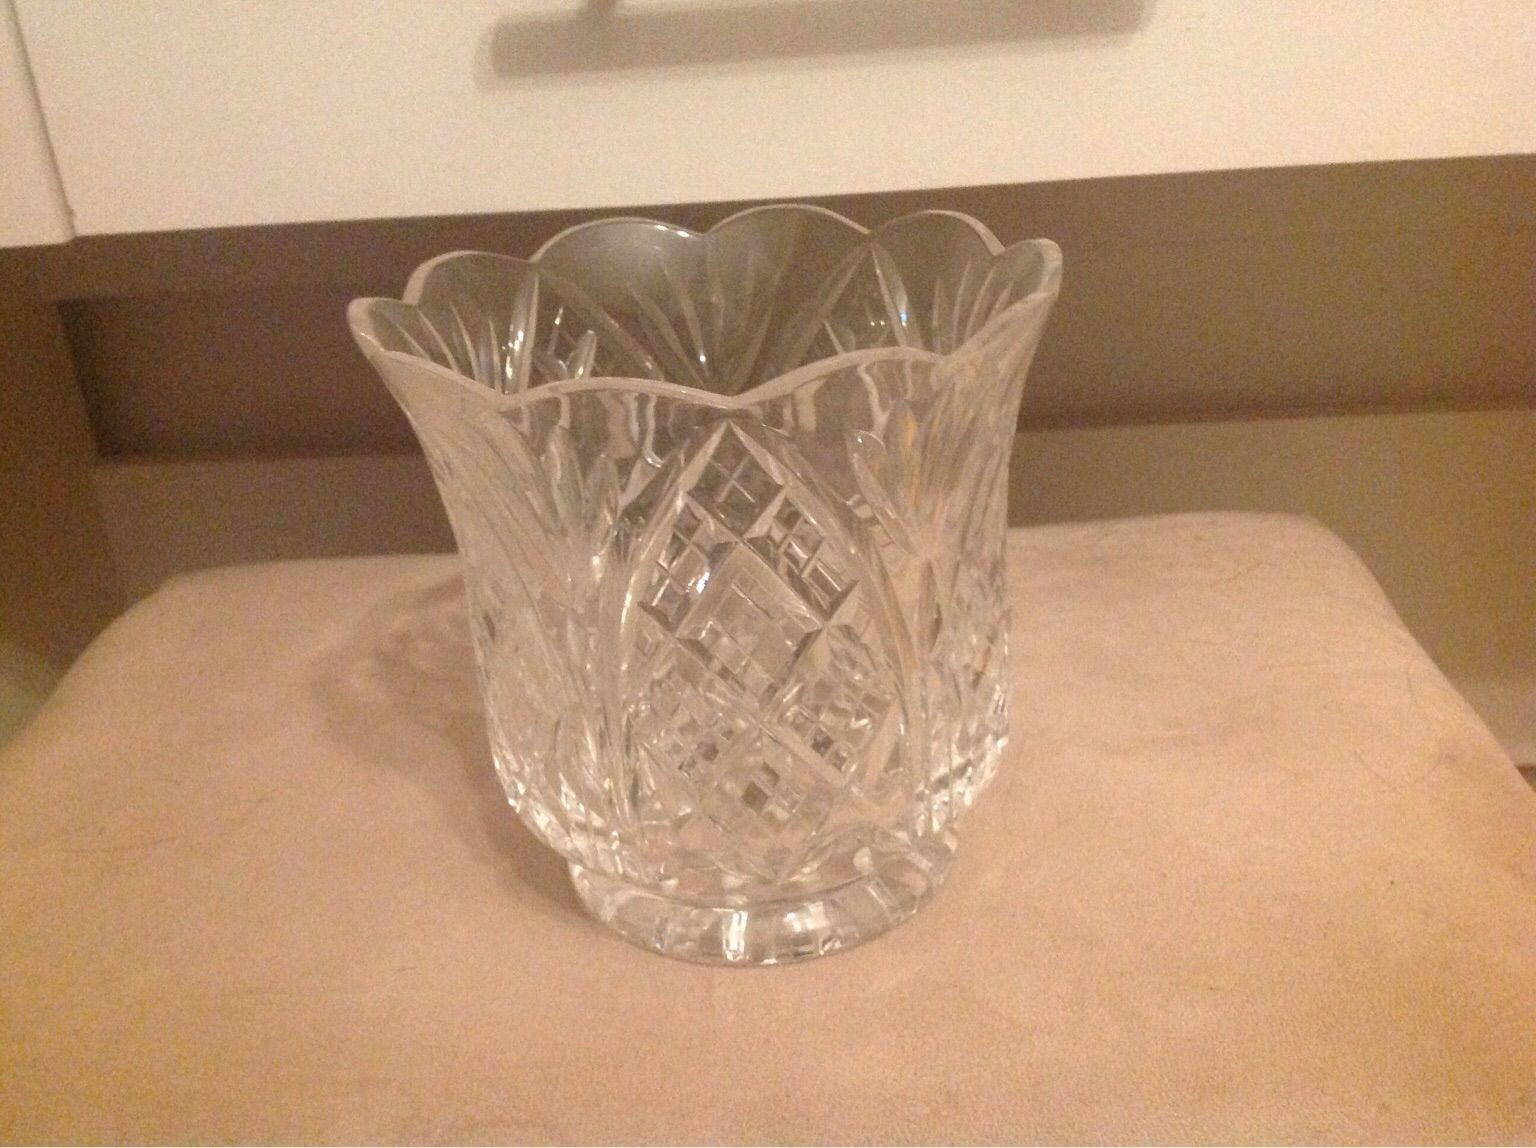 vase rentals miami of https en shpock com i wmucfctt7rd3b1cr 2018 10 10t015529 for waterford crystal vase 20af0c92